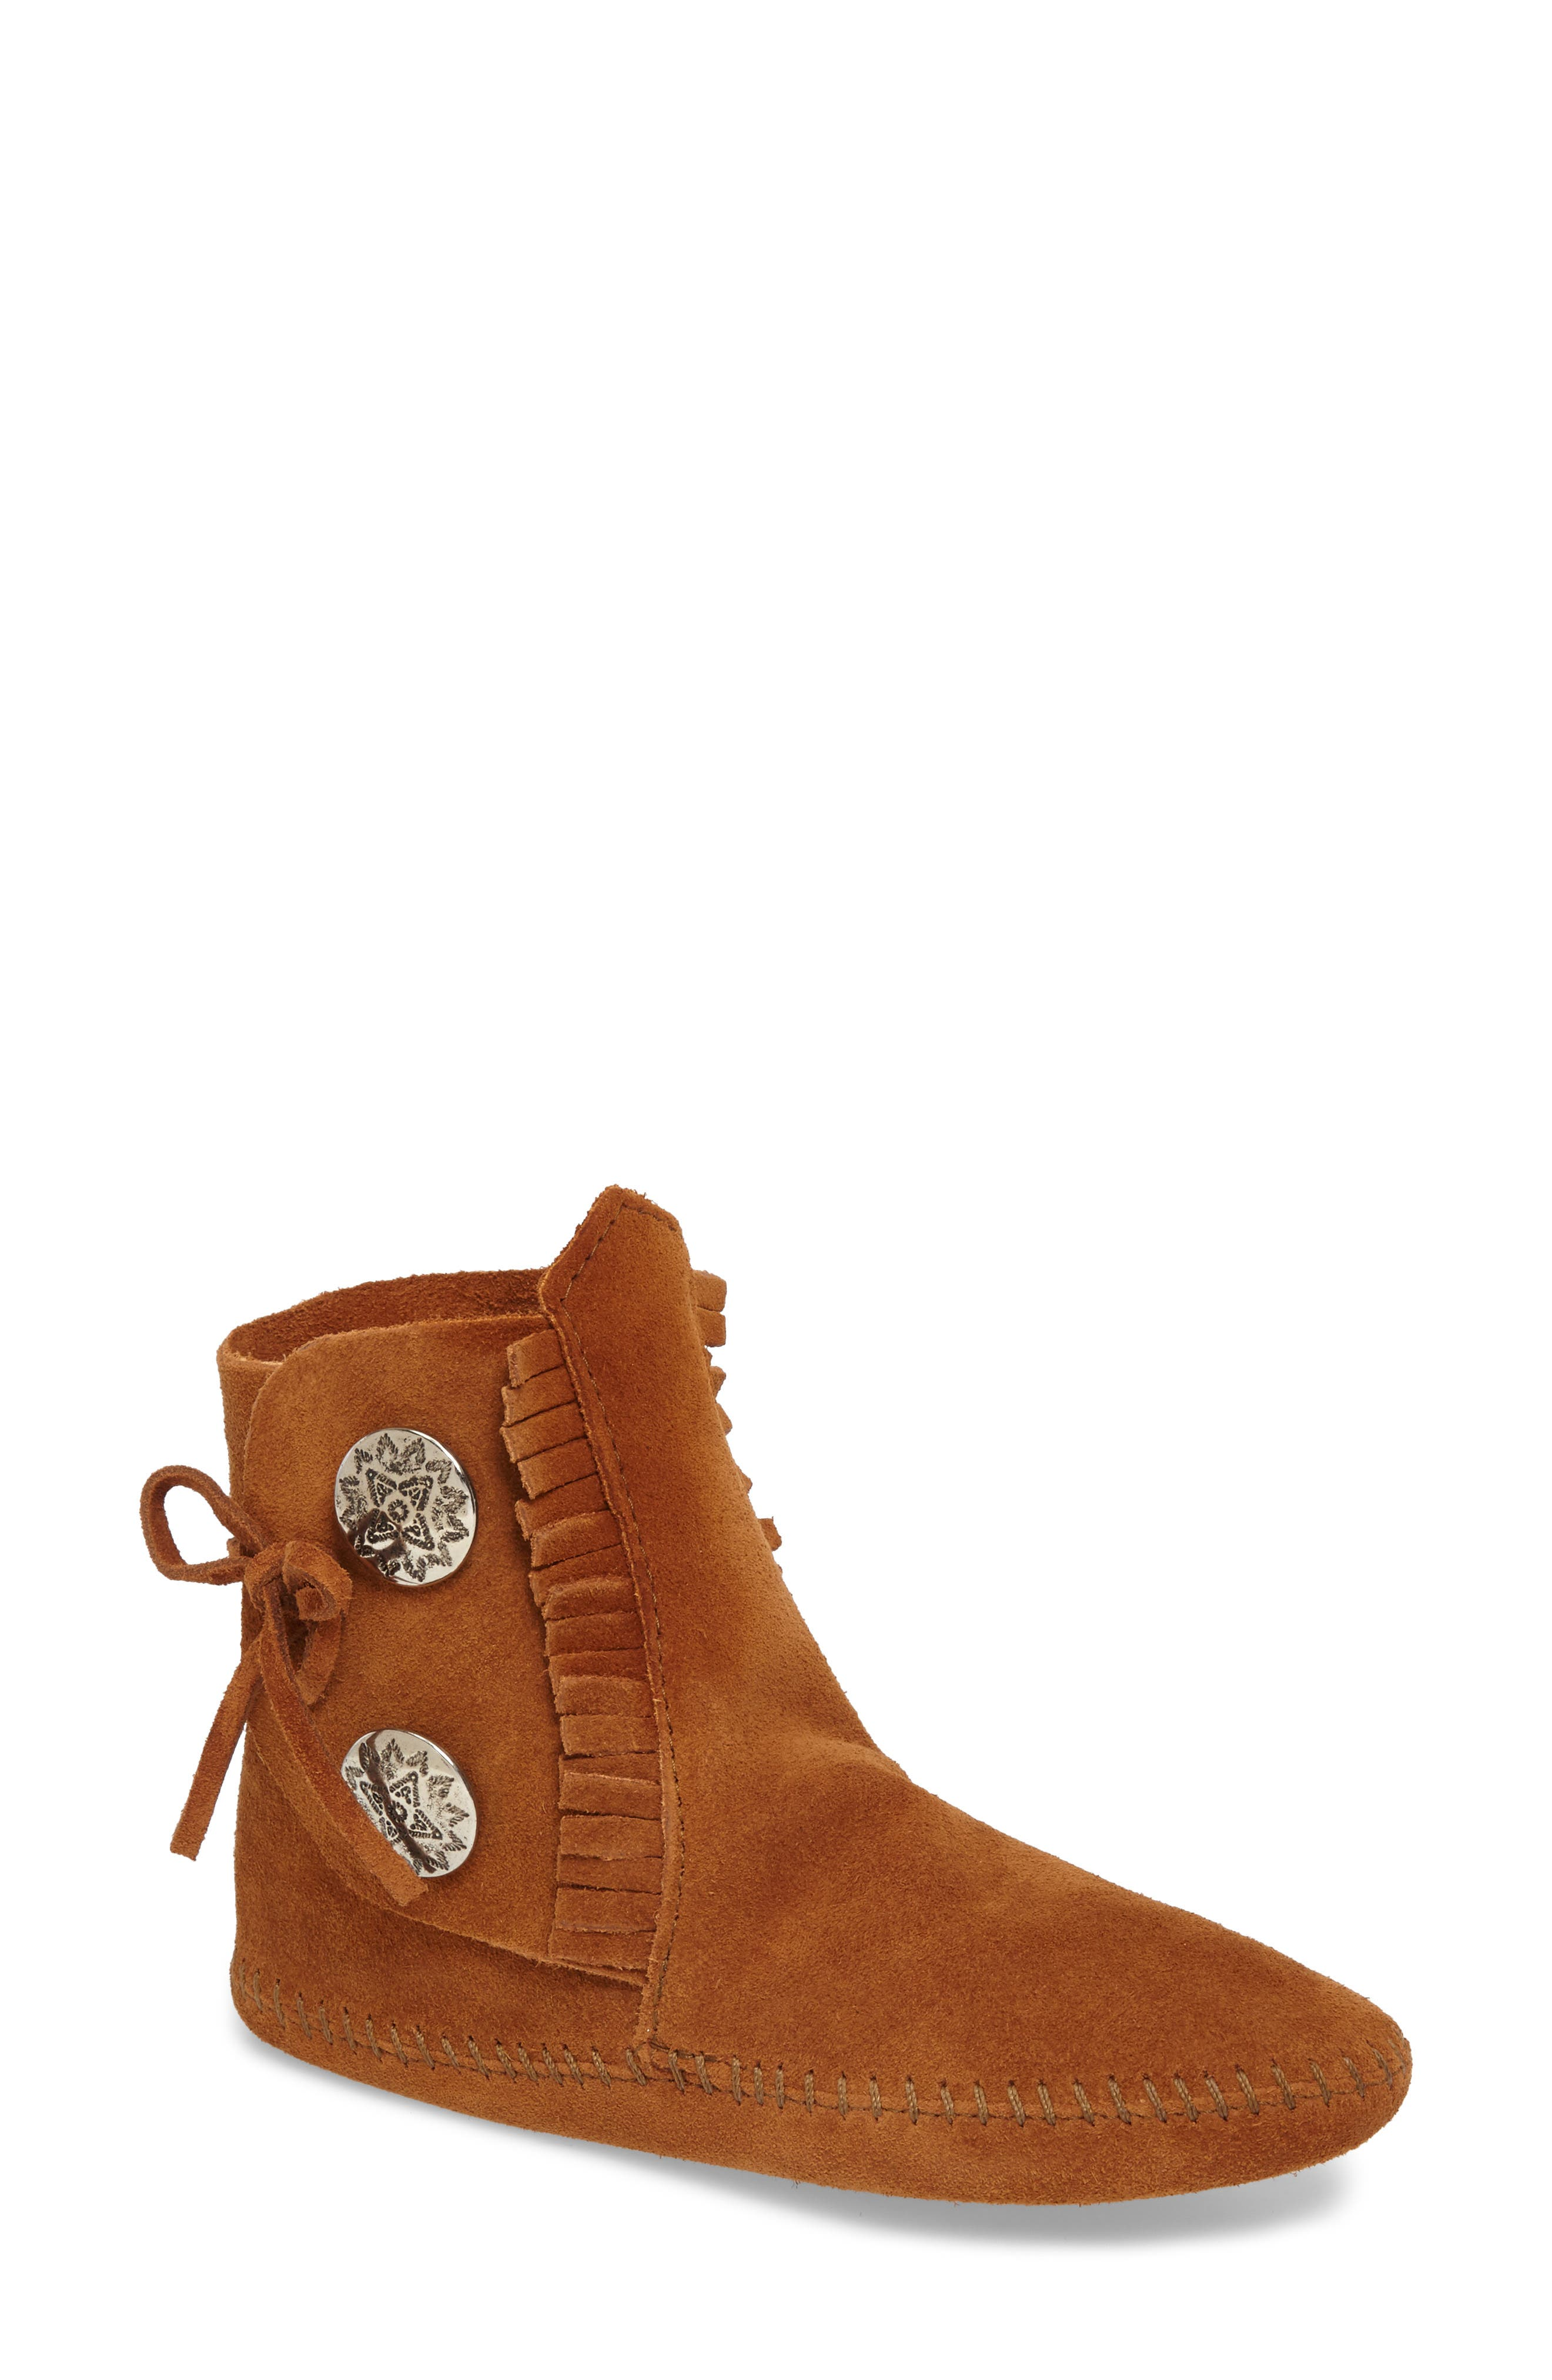 MINNETONKA Two-Button Softsole Bootie